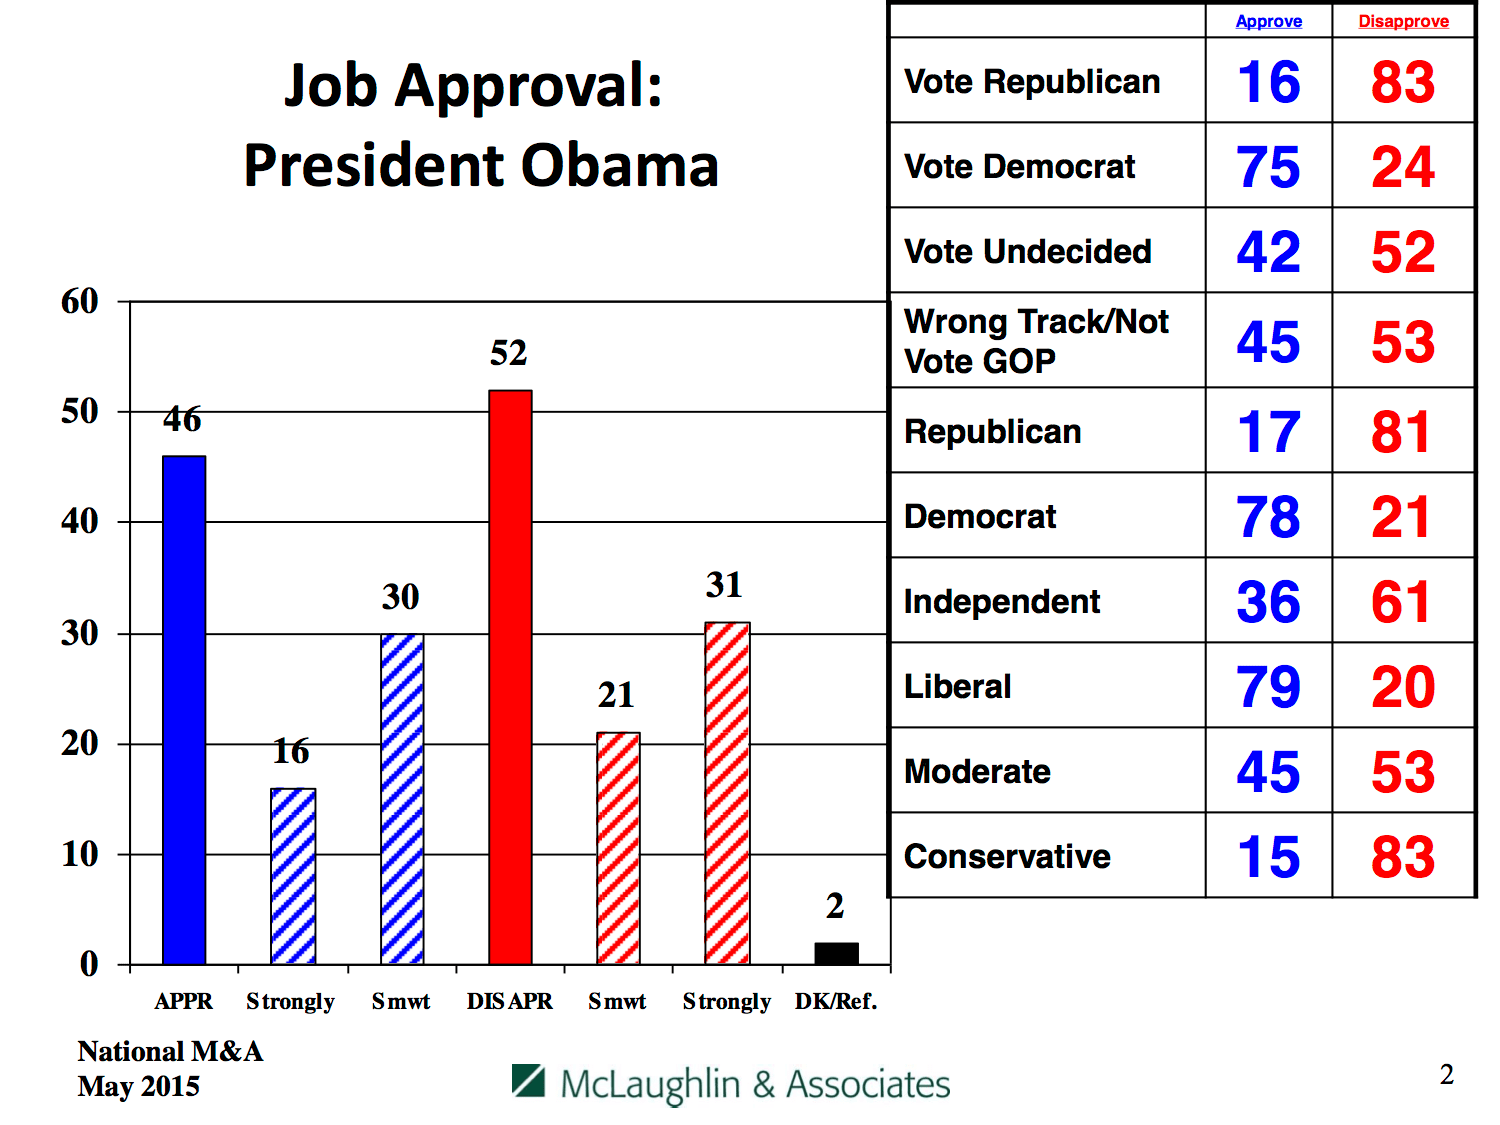 Obama's job approval, by party and affiliation